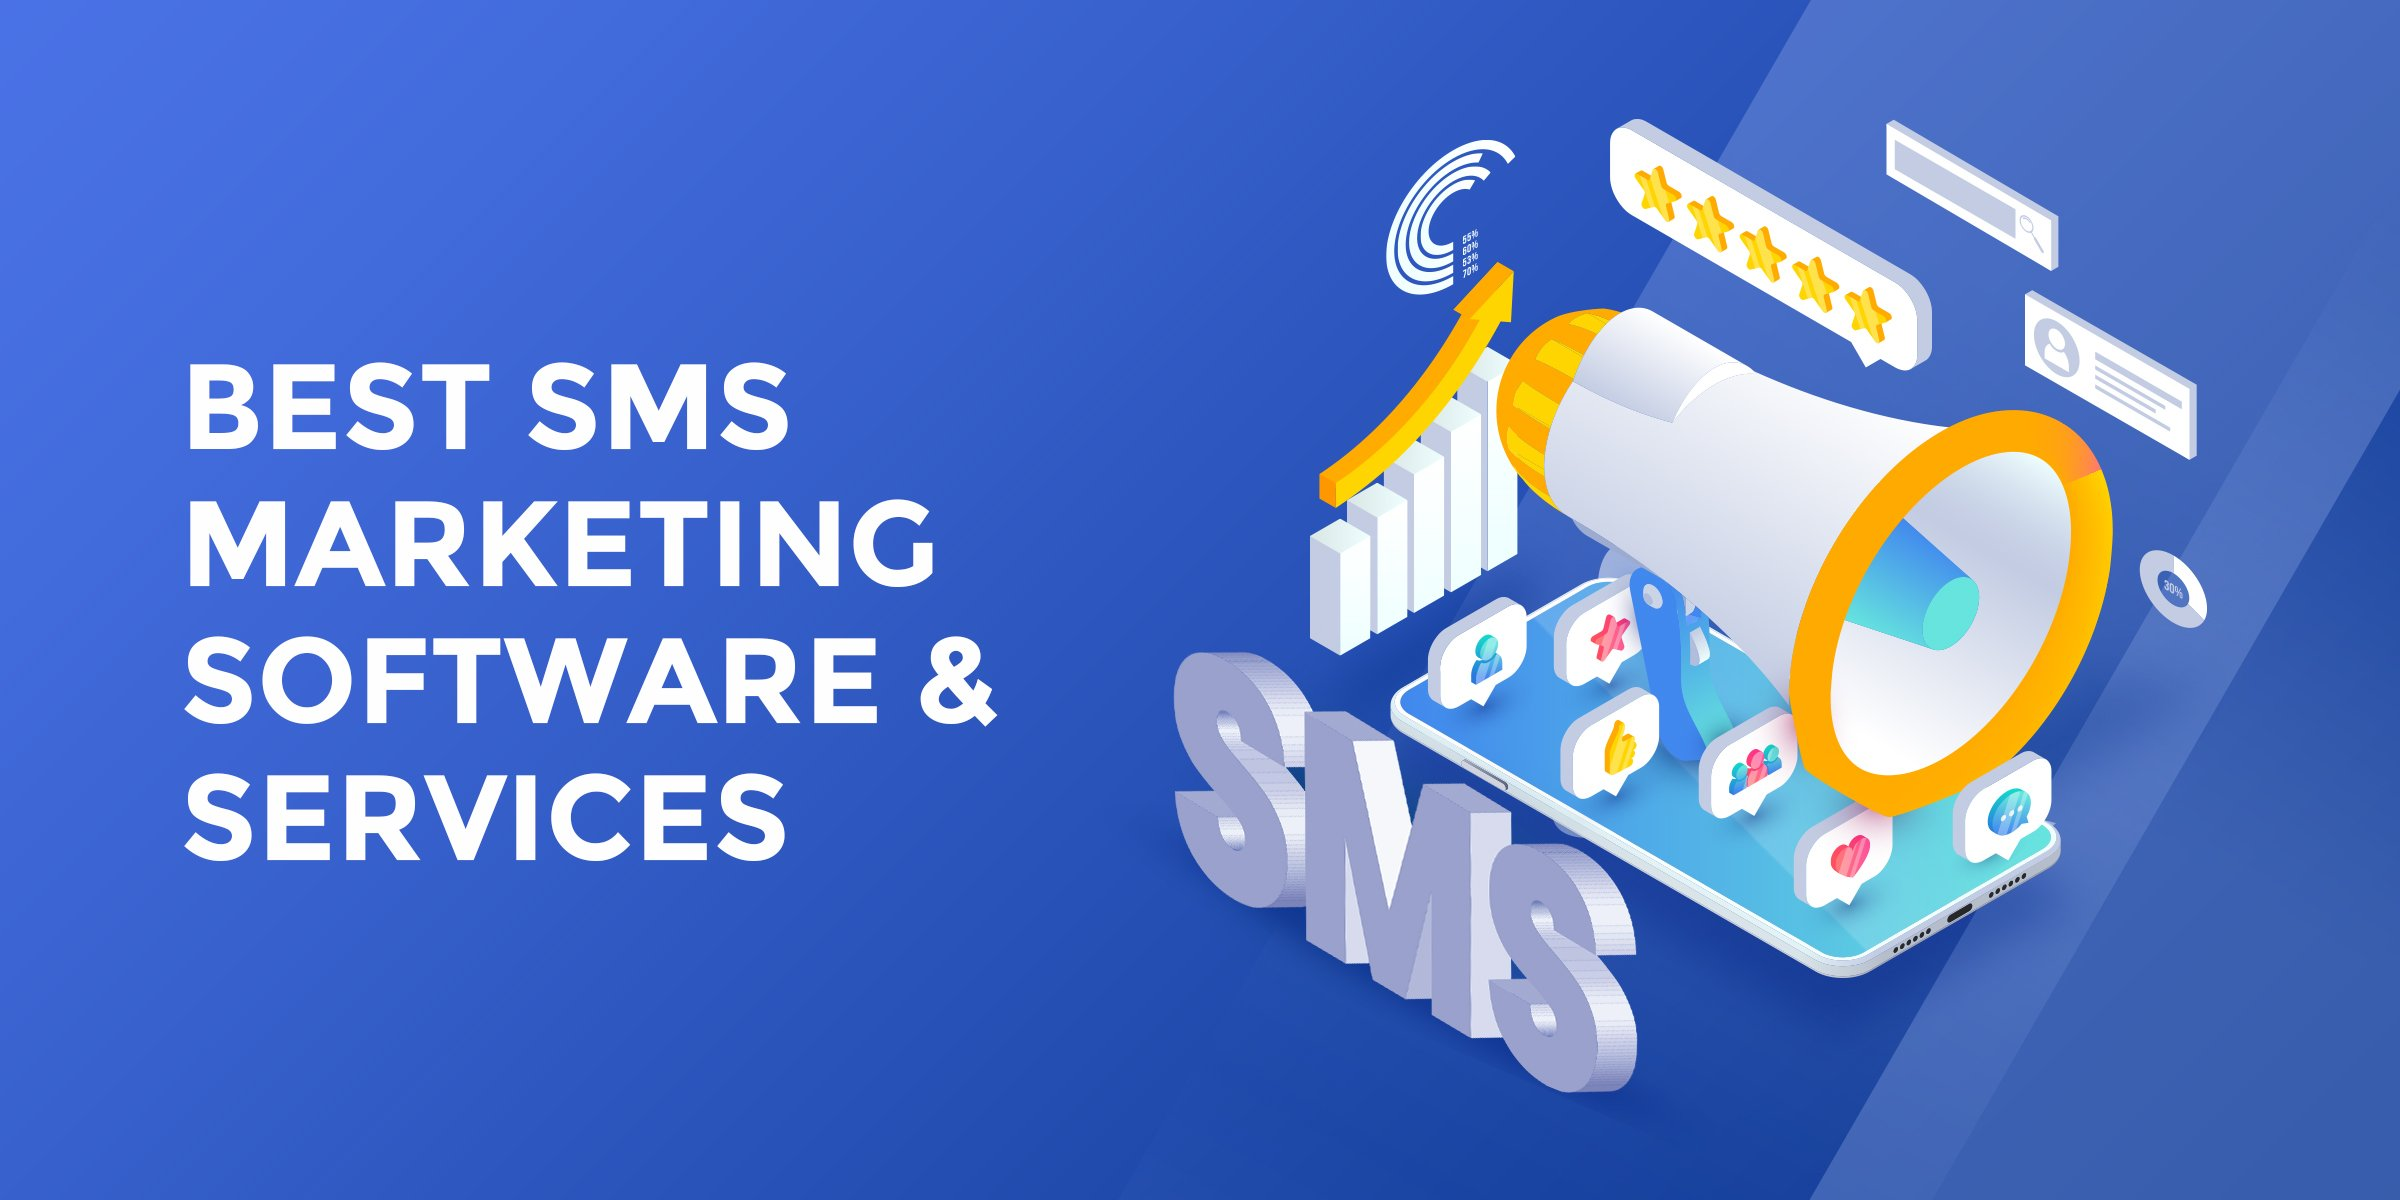 Best SMS Marketing Software